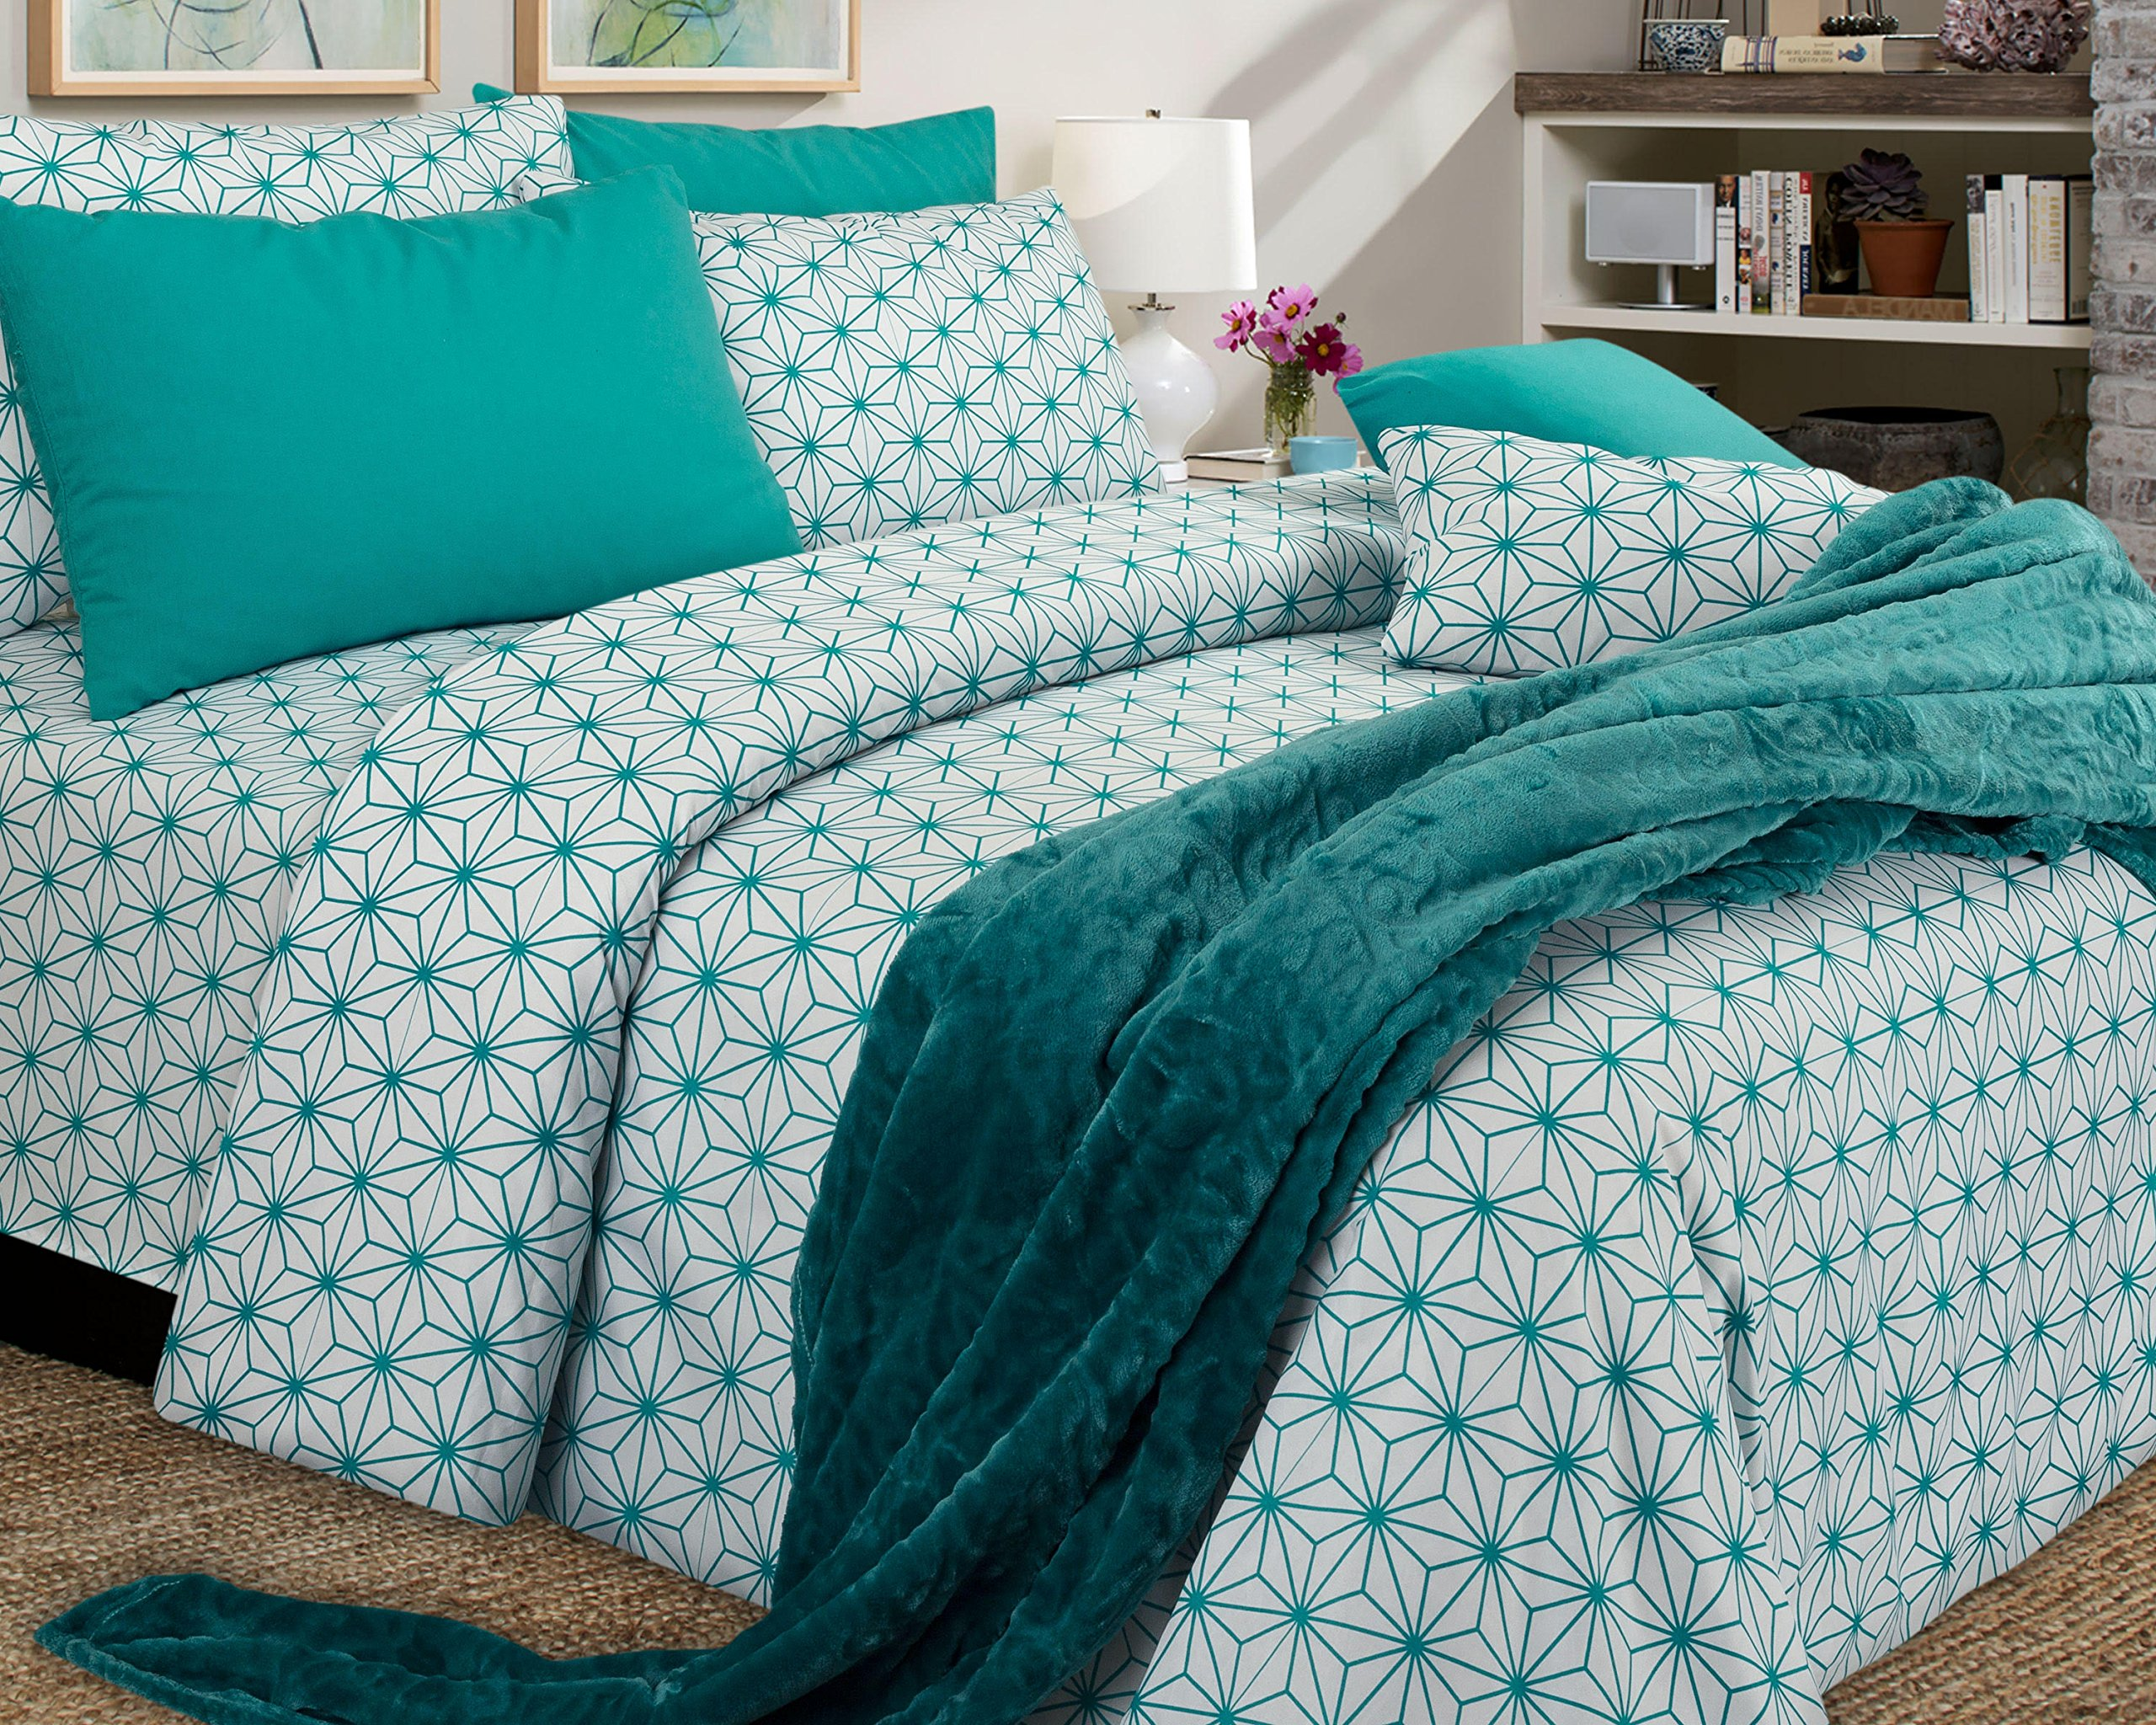 American Thread Collection 6-Piece Microfiber Bed Sheet Set - Deep Pocket - Cool and Wrinkle Free (Queen, Seamless Pattern Teal)